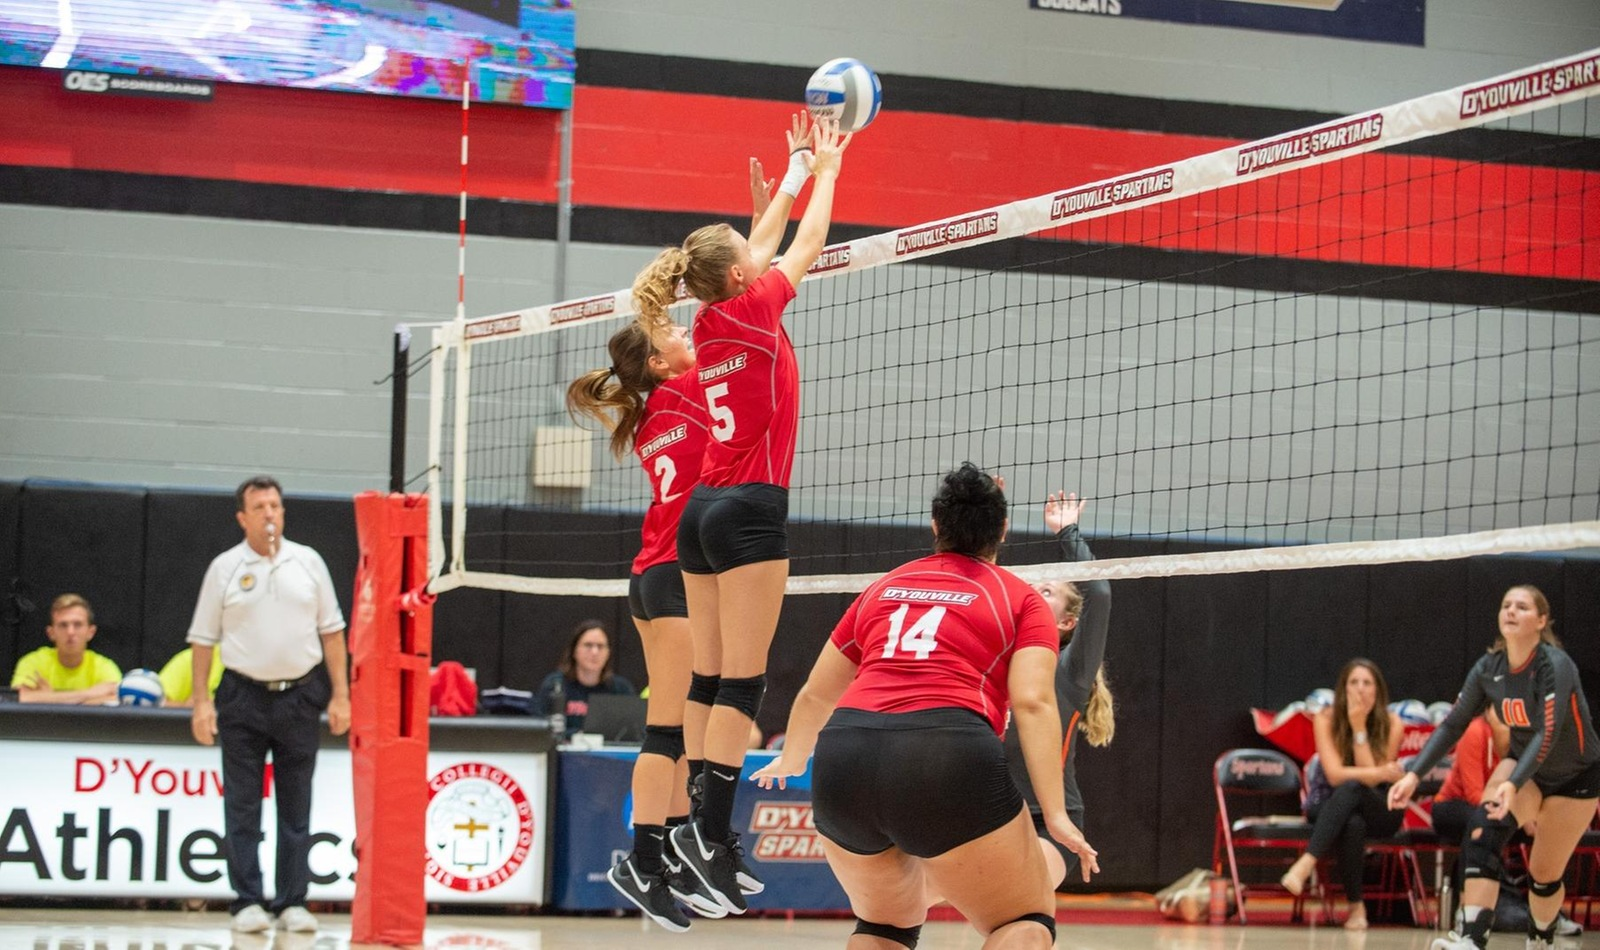 Talia Wright (2) and Carly Milleville (5) go up for a block at the net